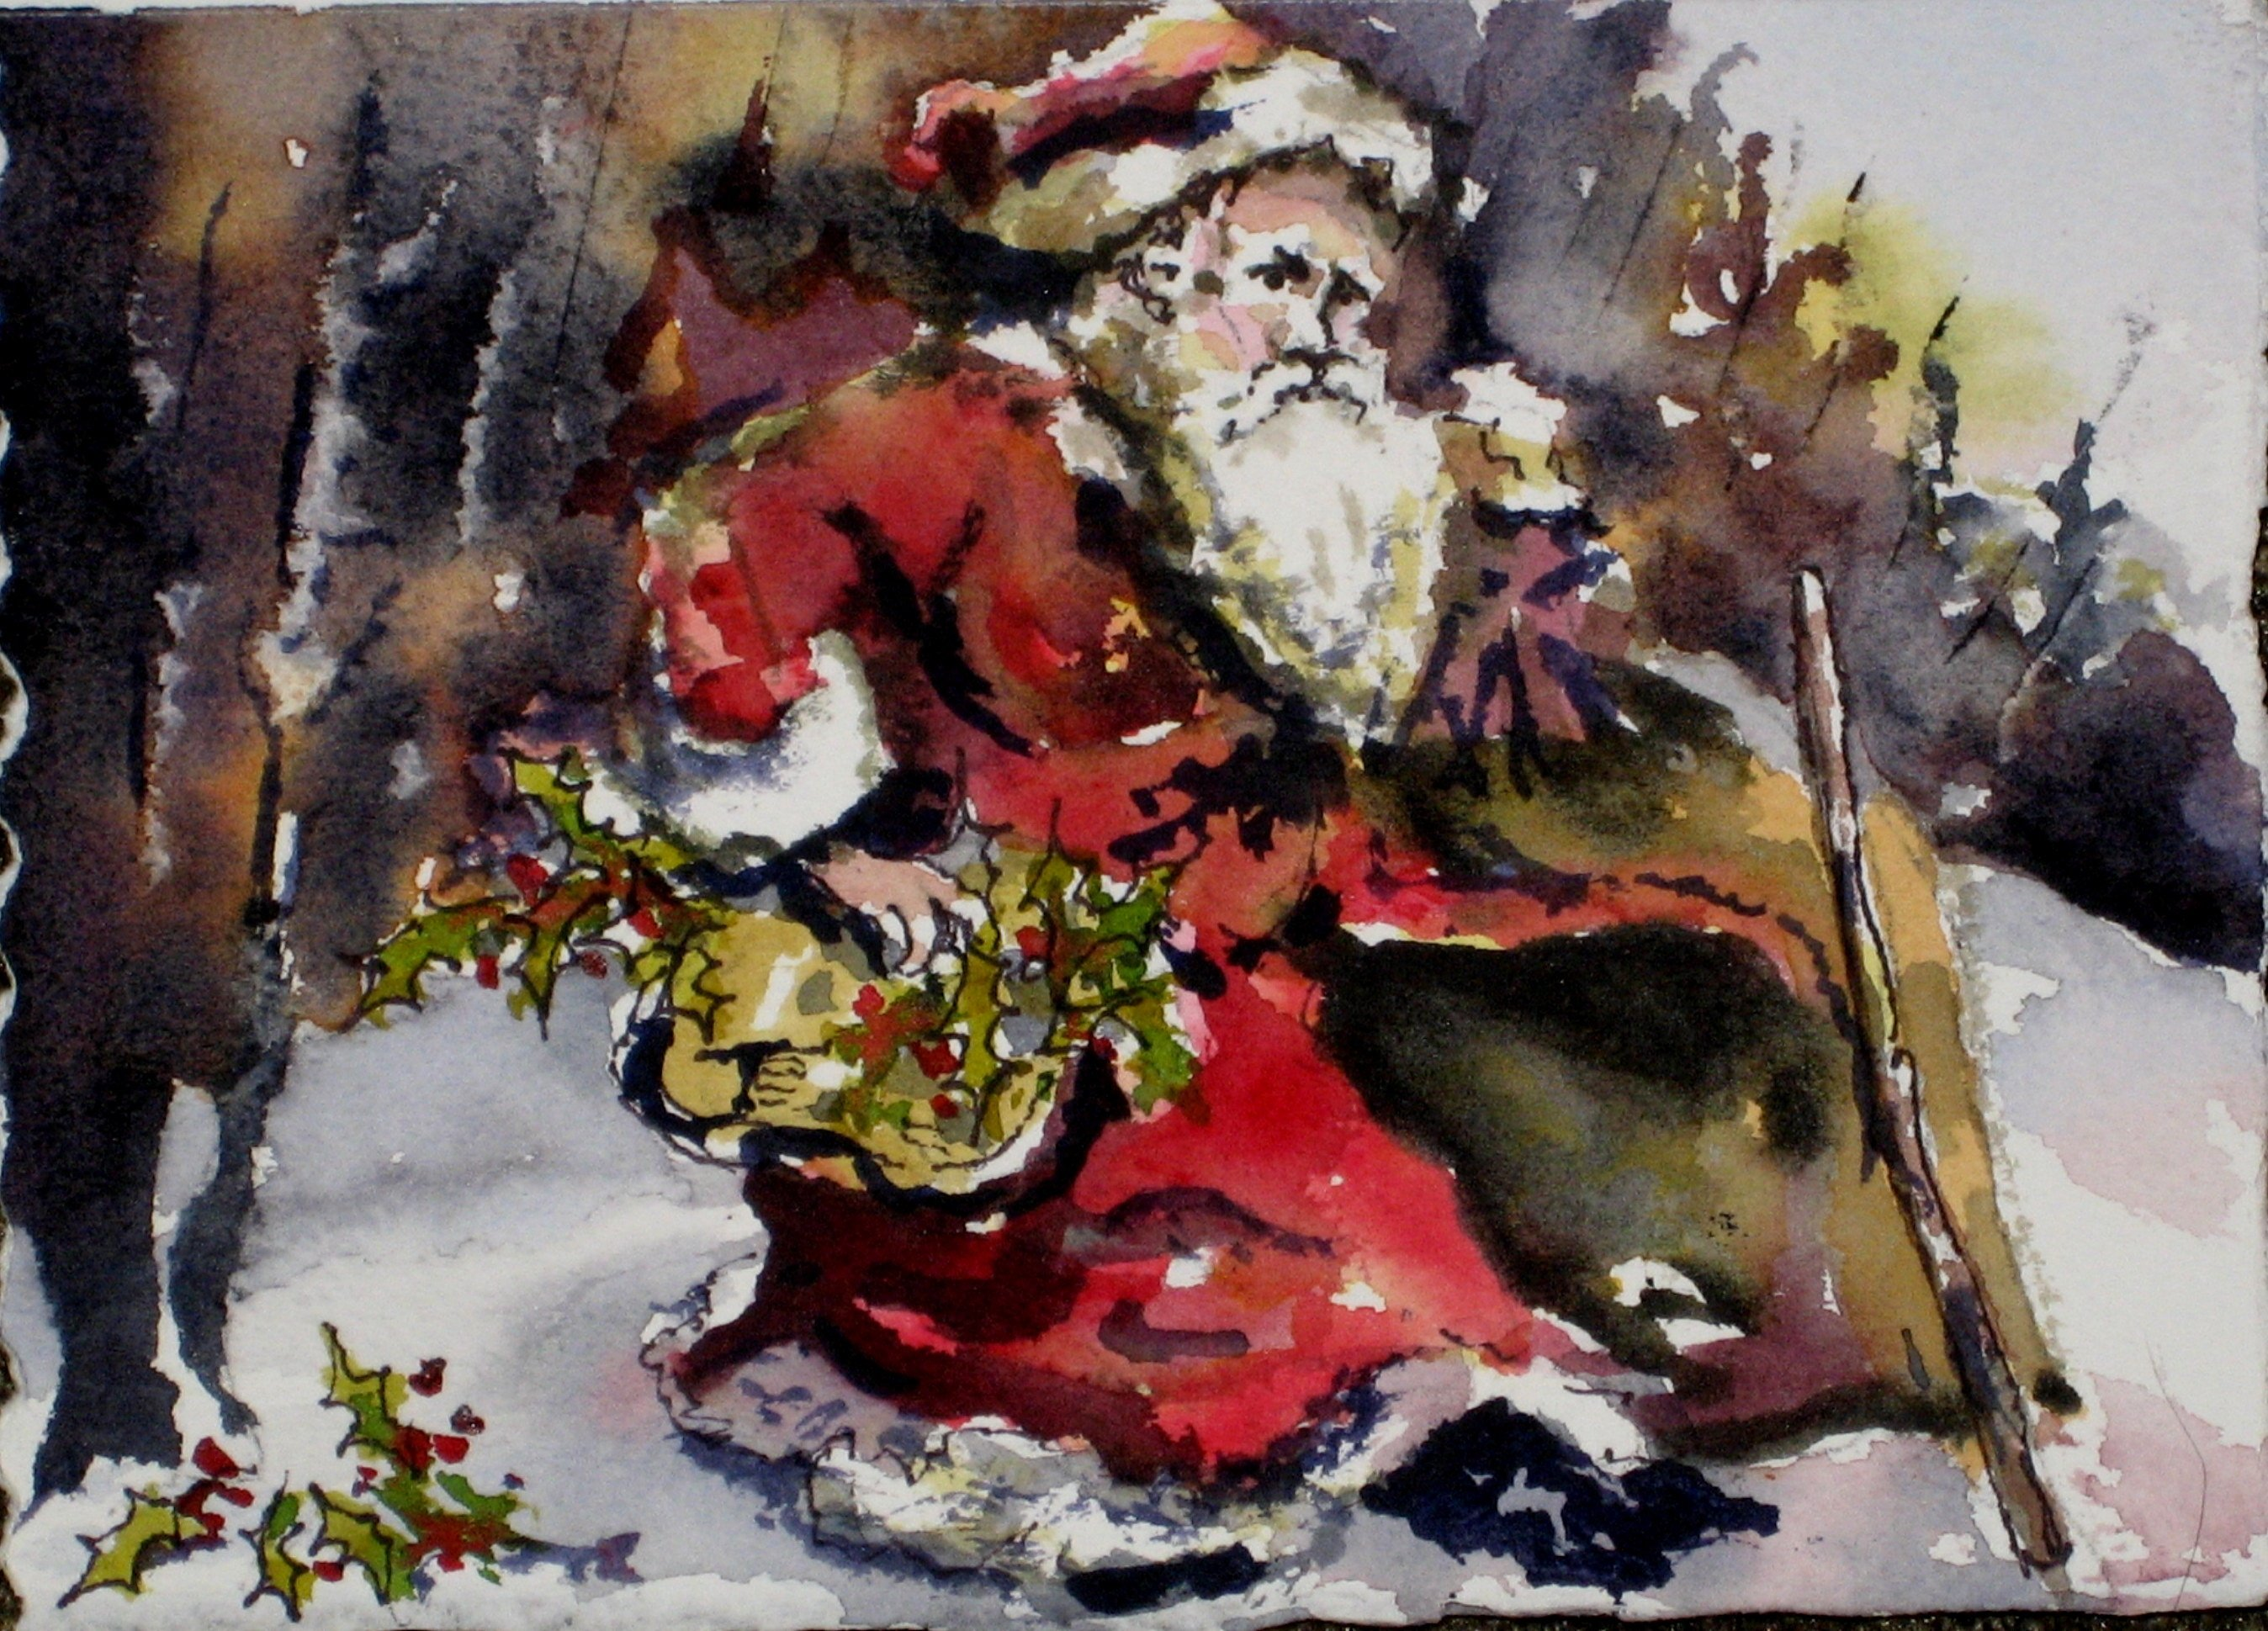 https://0201.nccdn.net/1_2/000/000/095/a44/Father-Christmas-2696x1939.jpg